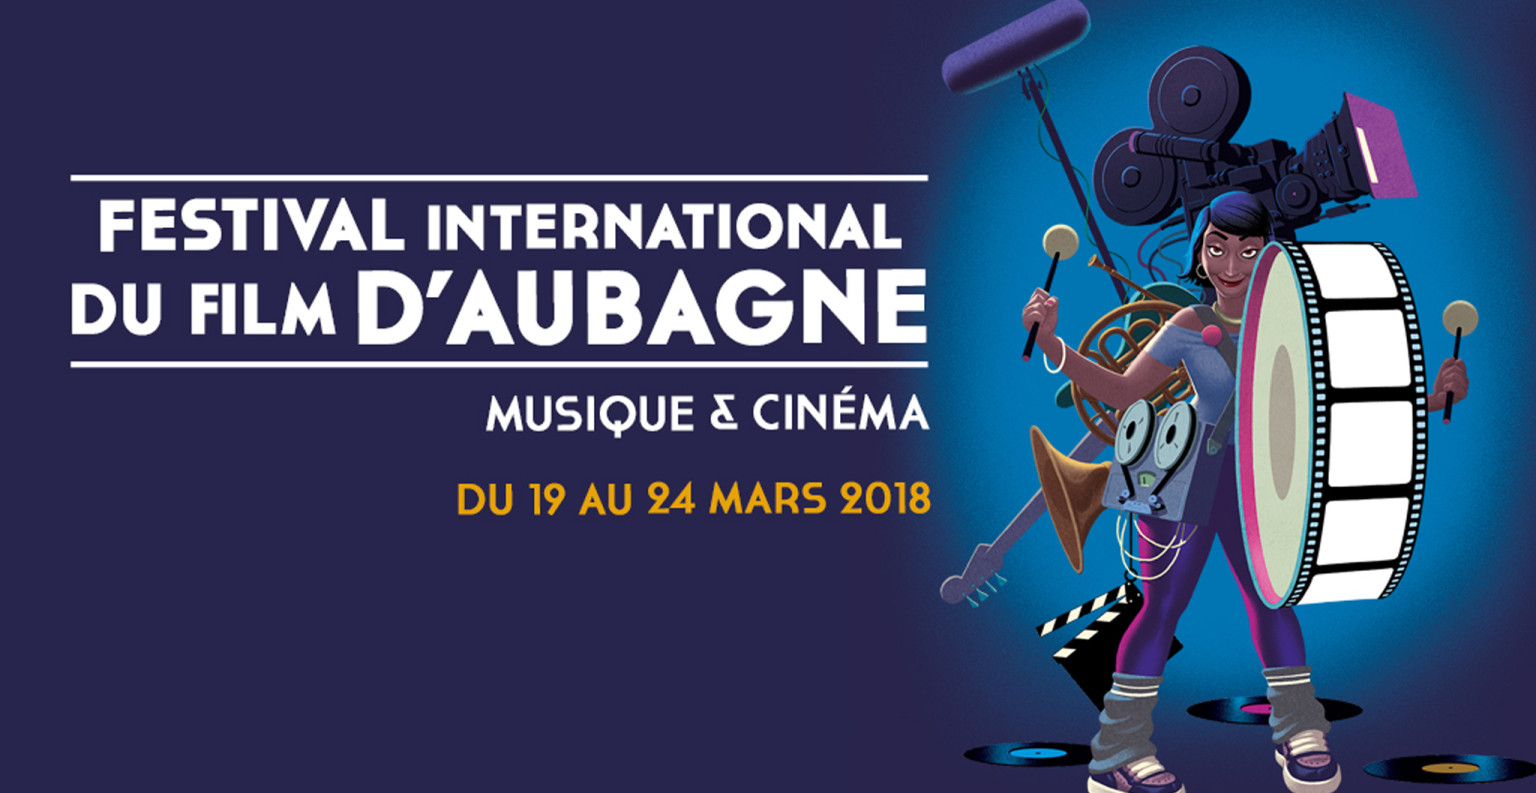 Affiche de l'édition 2018 du Festival International du Film d'Aubagne. ©DR